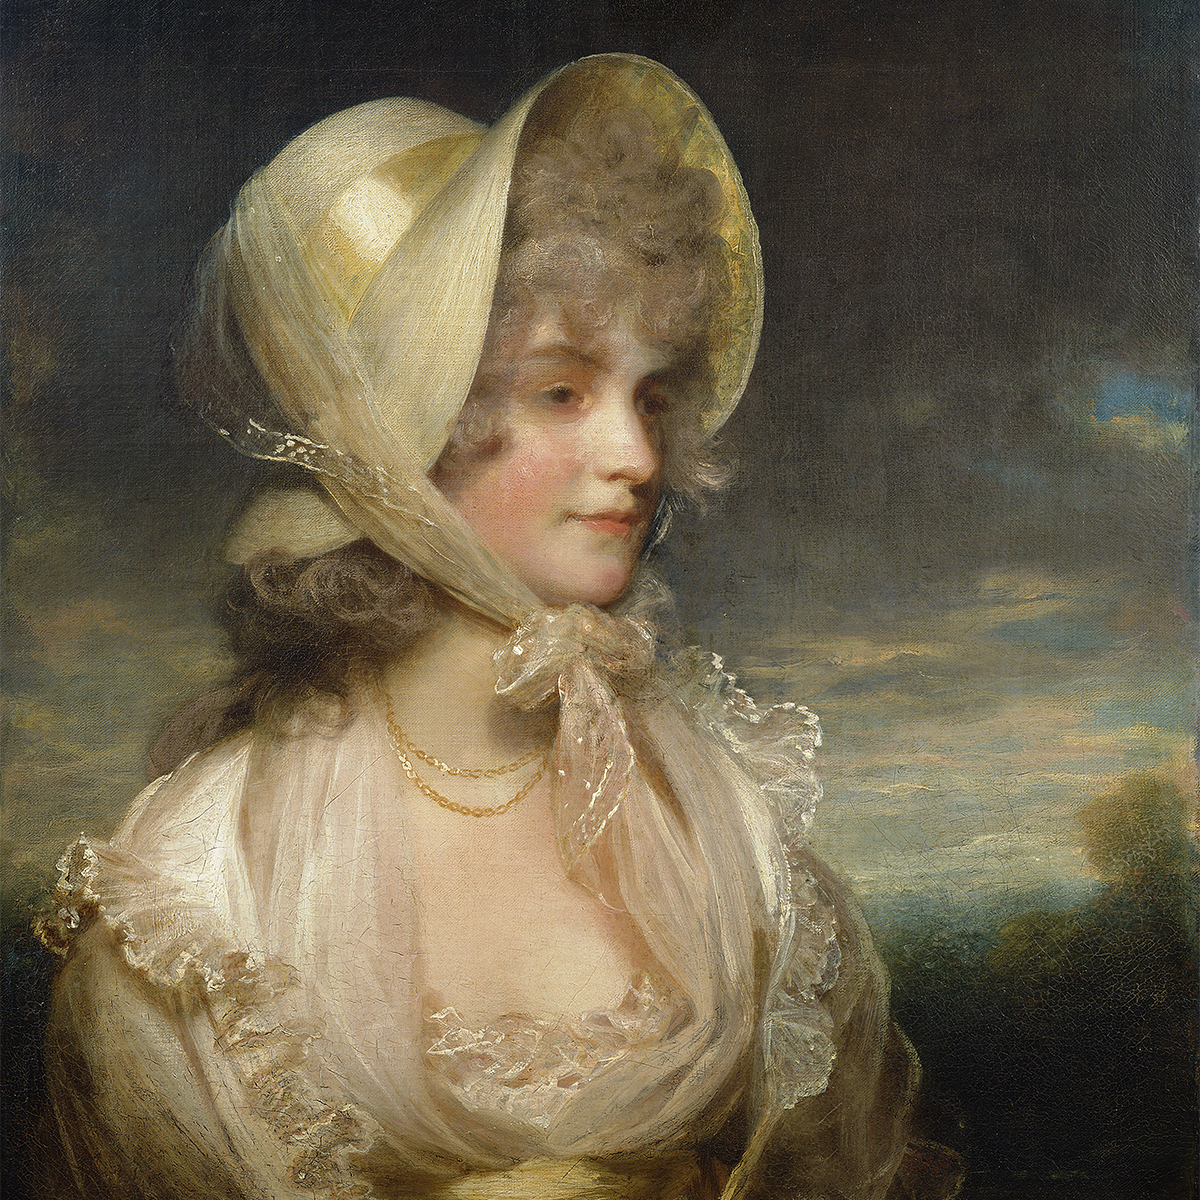 Oil painting of lady wearing a cream colored hat and looking to the side